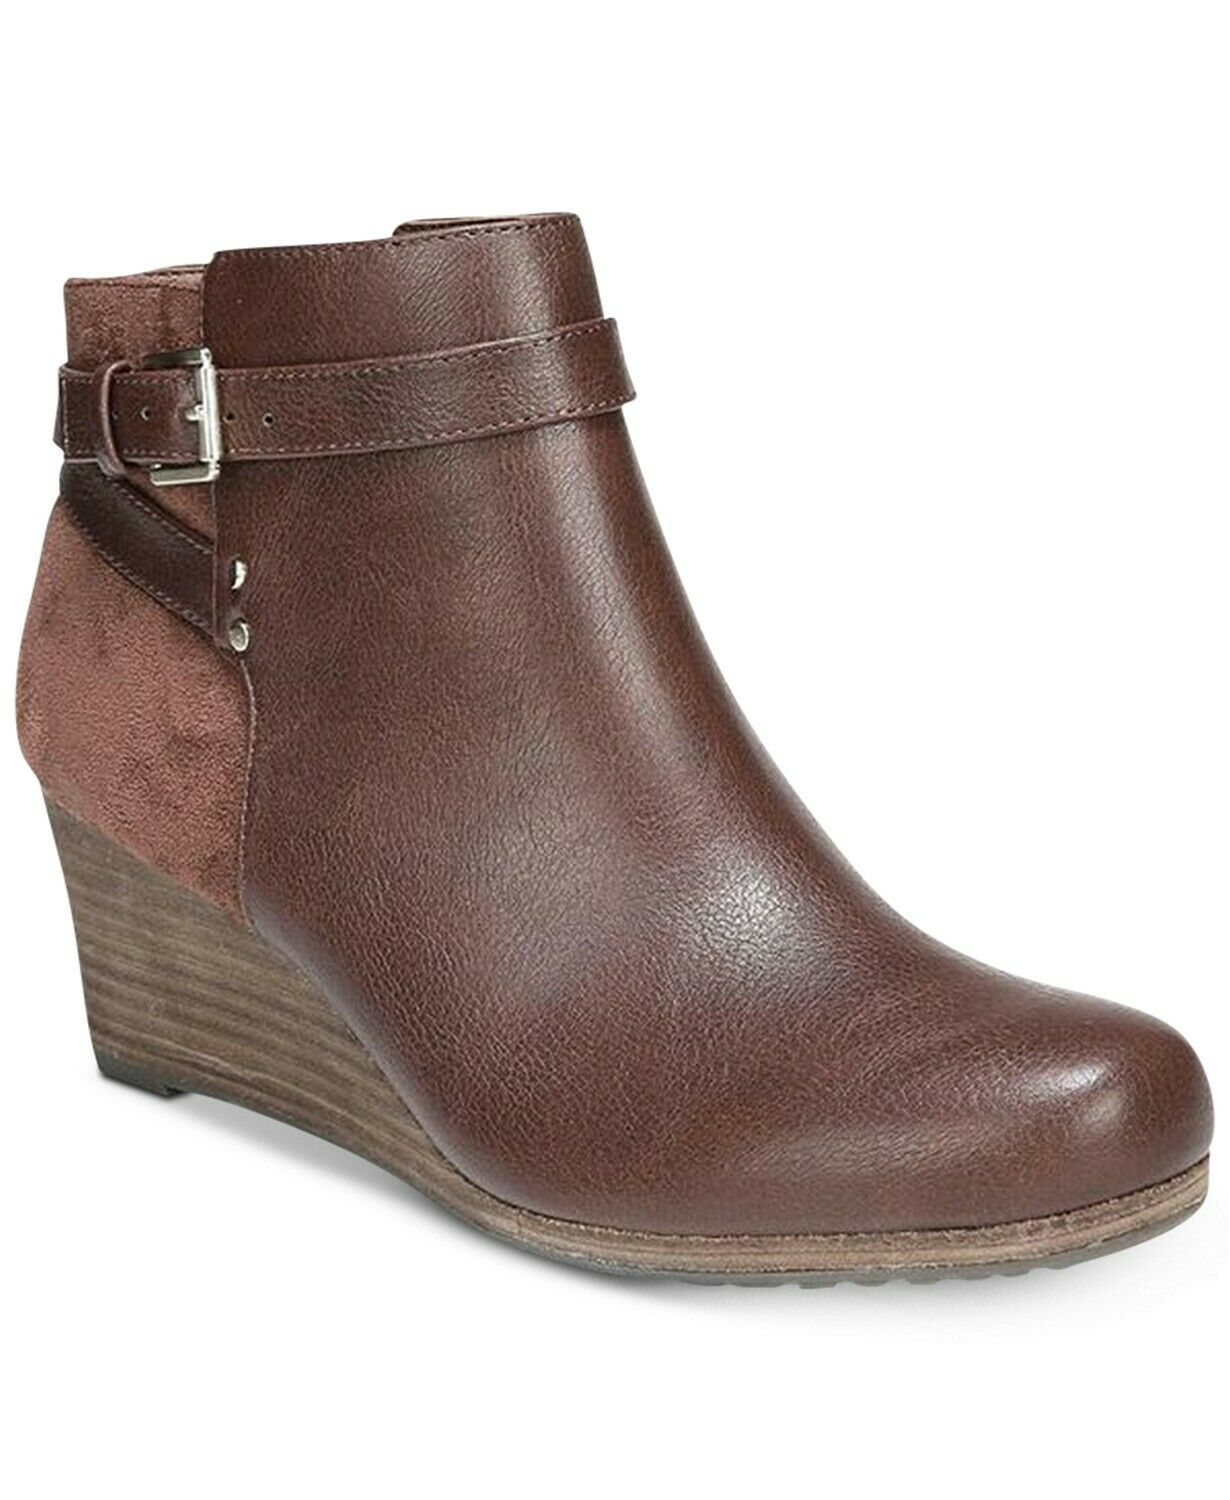 Dr. Scholl's Double Wedge BOOTIES Brown LEATHER Boots  Size 8 M -New-